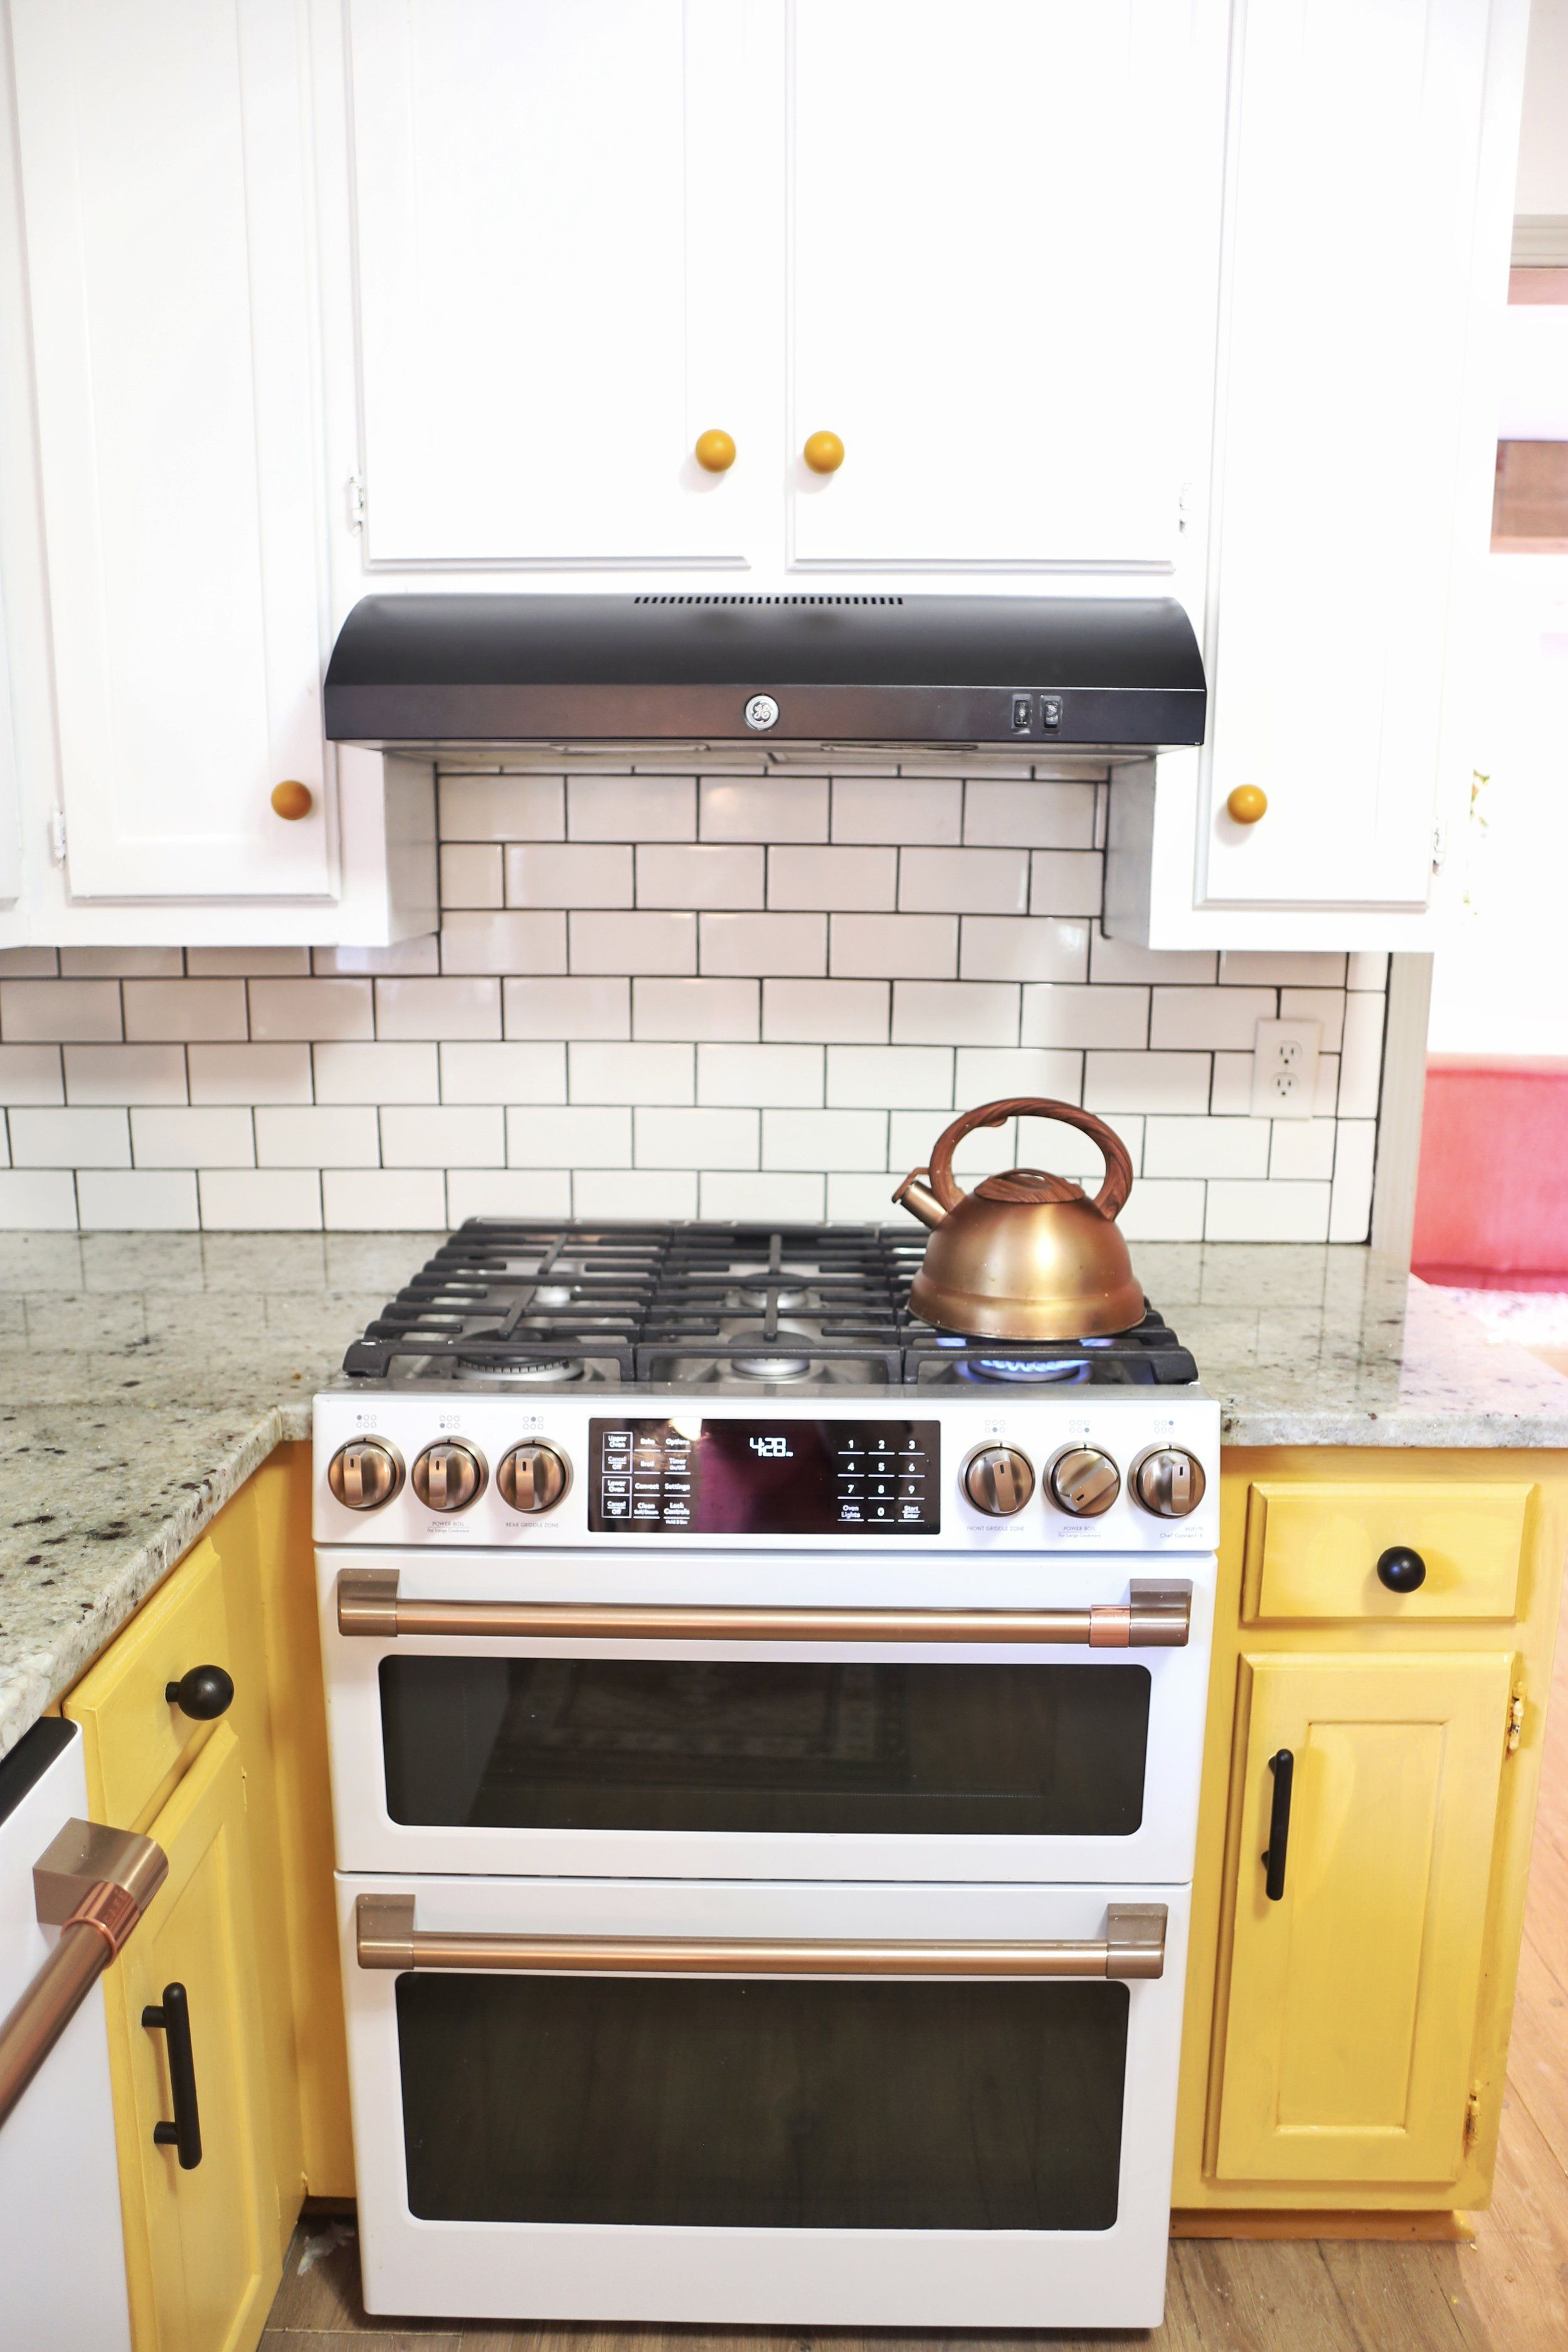 All About Vent Hoods Kitchen Ventilation Kitchen Vent Hood Kitchen Vent